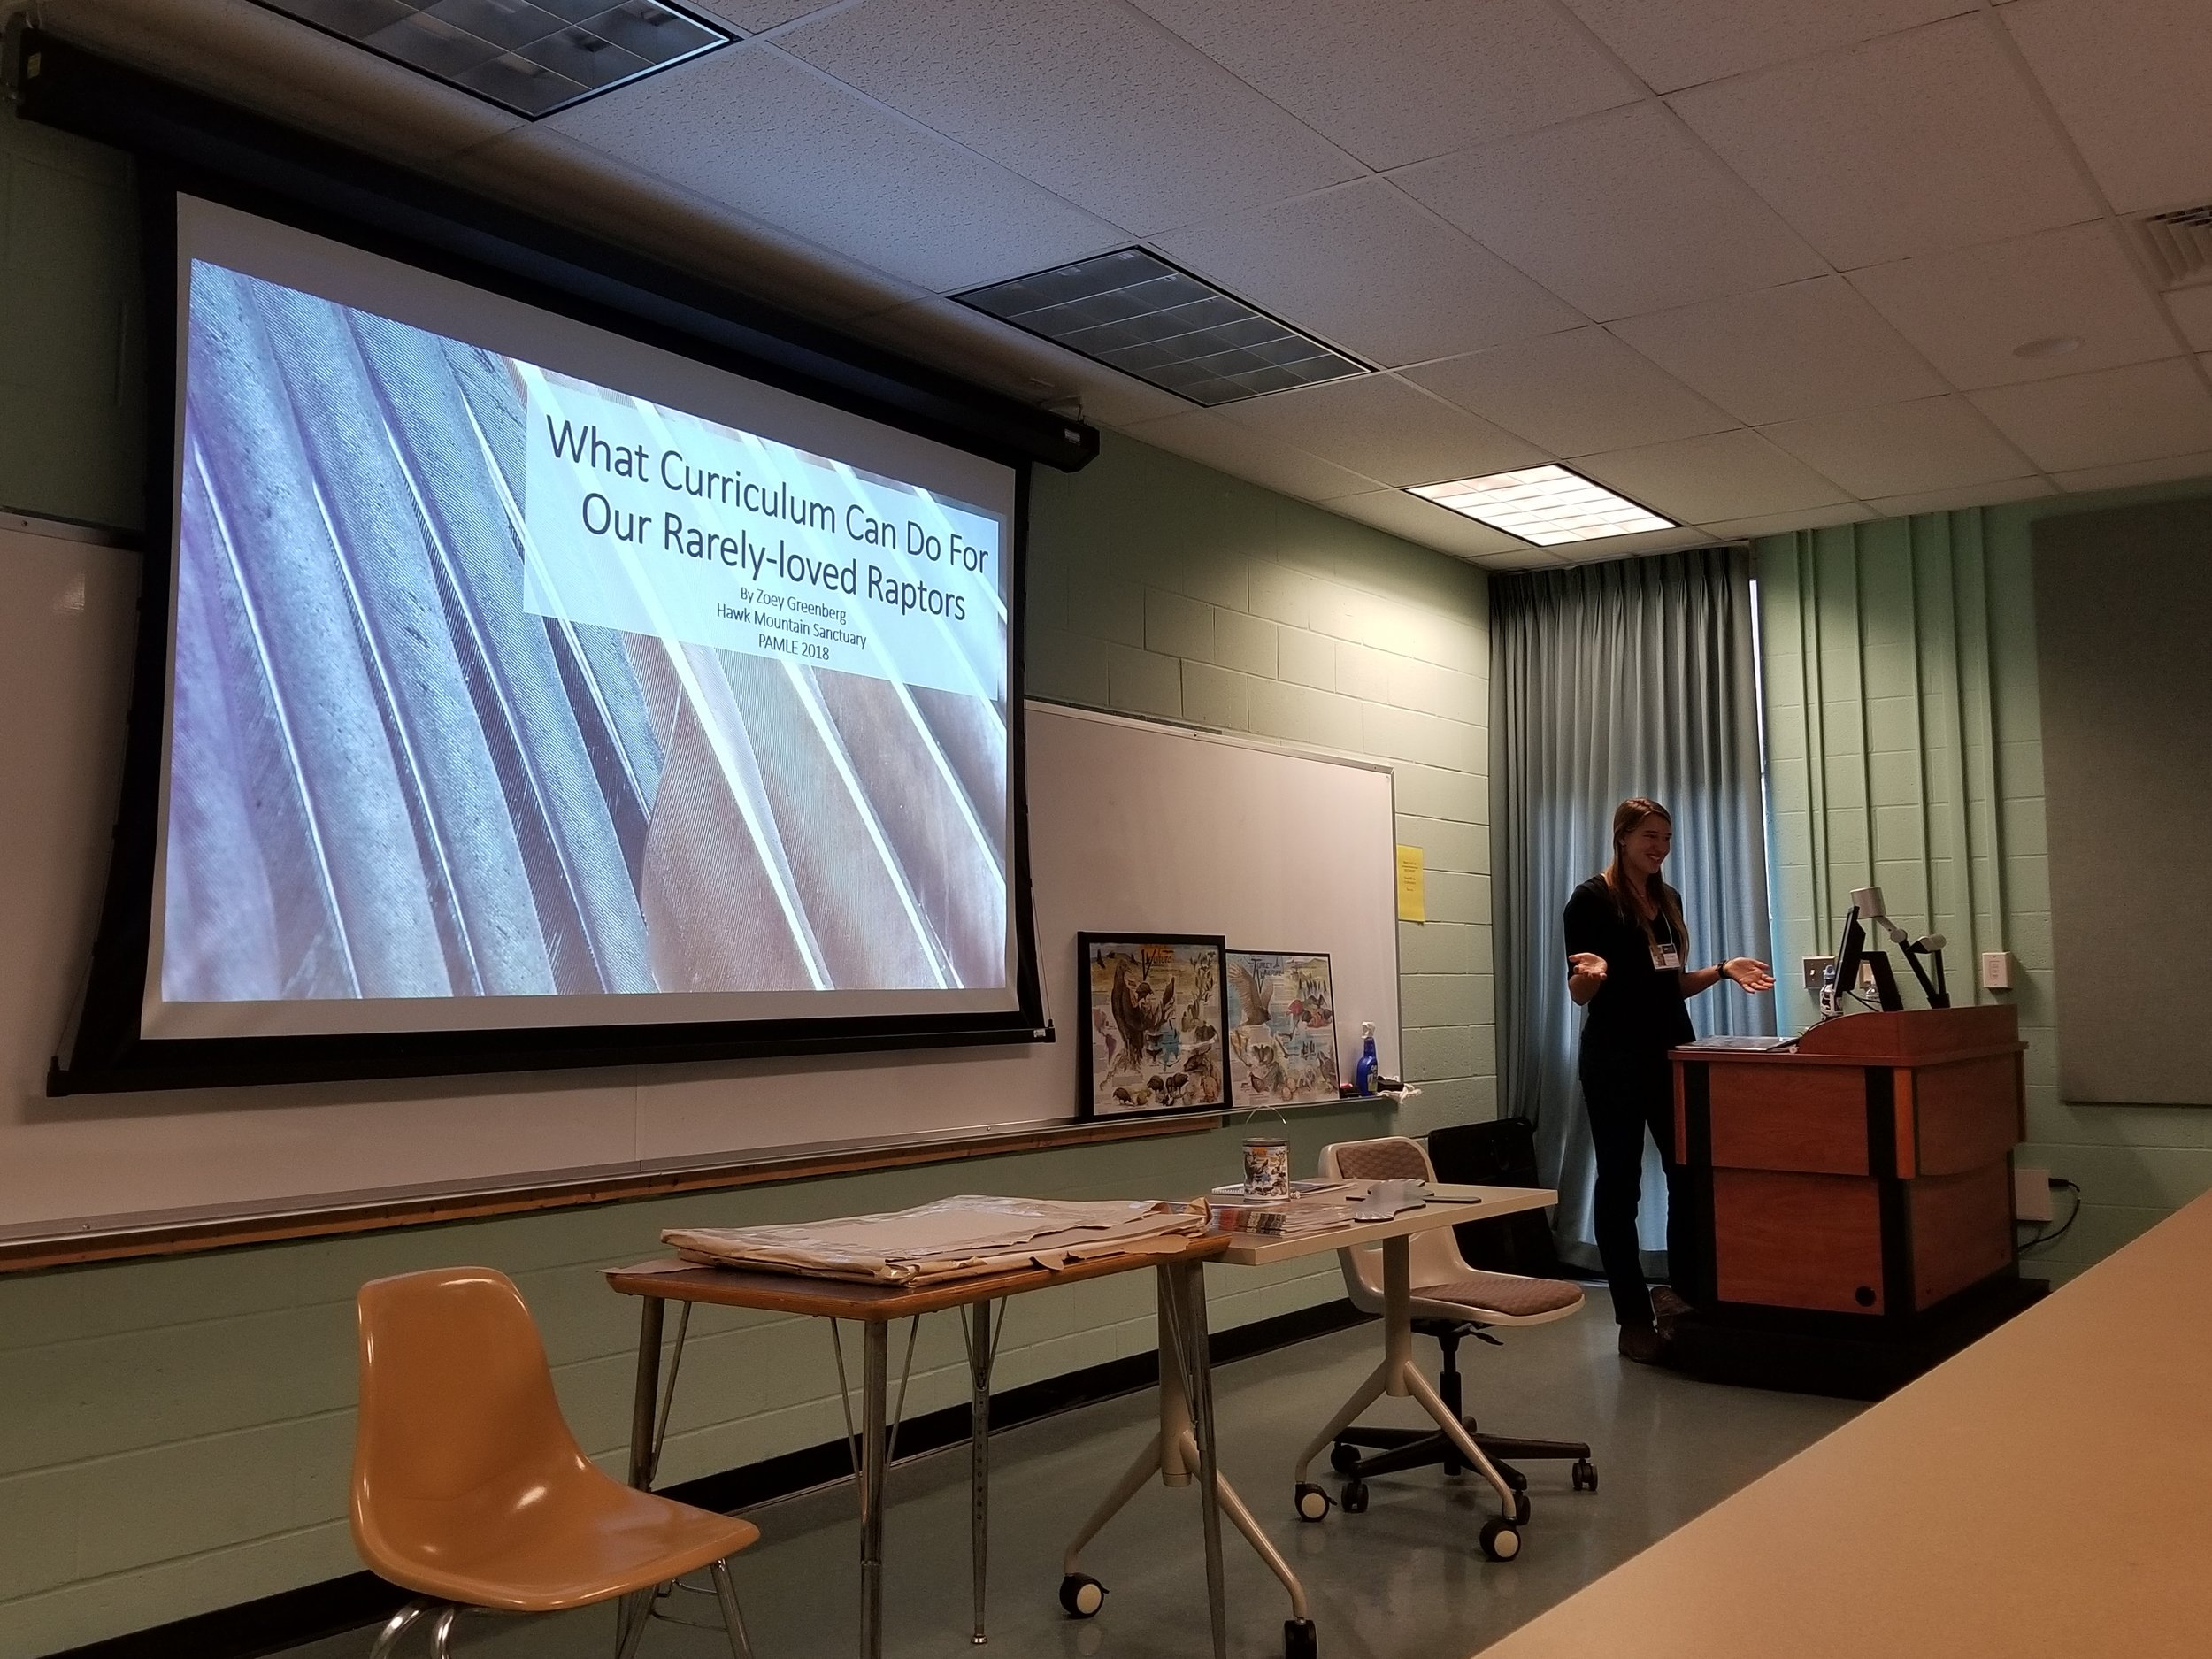 Zoey presenting during the PAMLE 2018 Conference